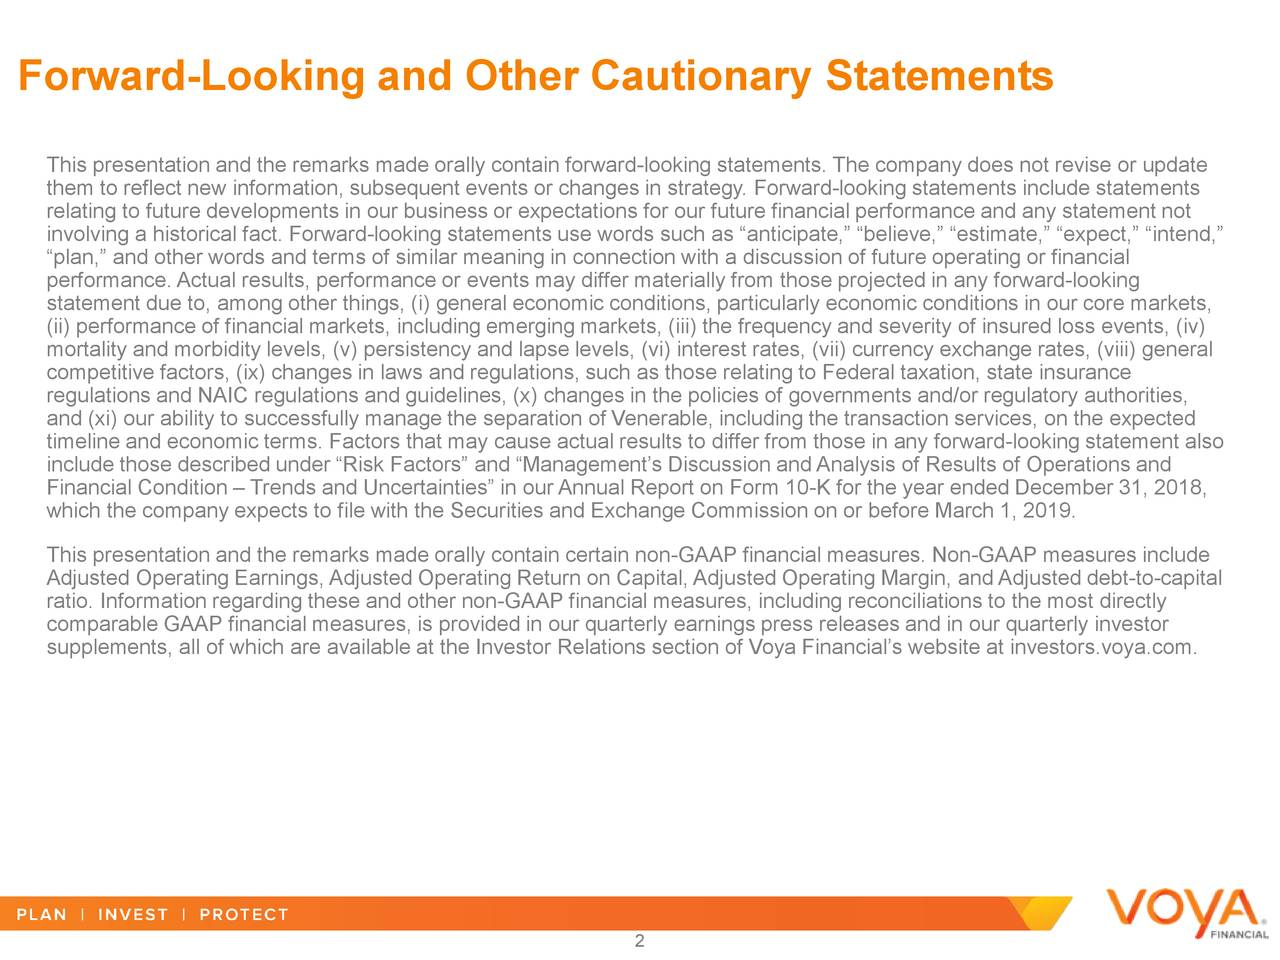 """This presentation and the remarks made orally contain forward-looking statements. The company does not revise or update them to reflect new information, subsequent events or changes in strategy. Forward-looking statements include statements relating to future developments in our business or expectations for our future financial performance and any statement not involving a historical fact. Forward-looking statements use words such as """"anticipate,"""" """"believe,"""" """"estimate,"""" """"expect,"""" """"intend,"""" """"plan,"""" and other words and terms of similar meaning in connection with a discussion of future operating or financial performance. Actual results, performance or events may differ materially from those projected in any forward-looking statement due to, among other things, (i) general economic conditions, particularly economic conditions in our core markets, (ii) performance of financial markets, including emerging markets, (iii) the frequency and severity of insured loss events, (iv) mortality and morbidity levels, (v) persistency and lapse levels, (vi) interest rates, (vii) currency exchange rates, (viii) general competitive factors, (ix) changes in laws and regulations, such as those relating to Federal taxation, state insurance regulations and NAIC regulations and guidelines, (x) changes in the policies of governments and/or regulatory authorities, and (xi) our ability to successfully manage the separation of Venerable, including the transaction services, on the expected timeline and economic terms. Factors that may cause actual results to differ from those in any forward-looking statement also include those described under """"Risk Factors"""" and """"Management's Discussion and Analysis of Results of Operations and Financial Condition – Trends and Uncertainties"""" in our Annual Report on Form 10-K for the year ended December 31, 2018, which the company expects to file with the Securities and Exchange Commission on or before March 1, 2019. This presentation and the remarks made orally co"""